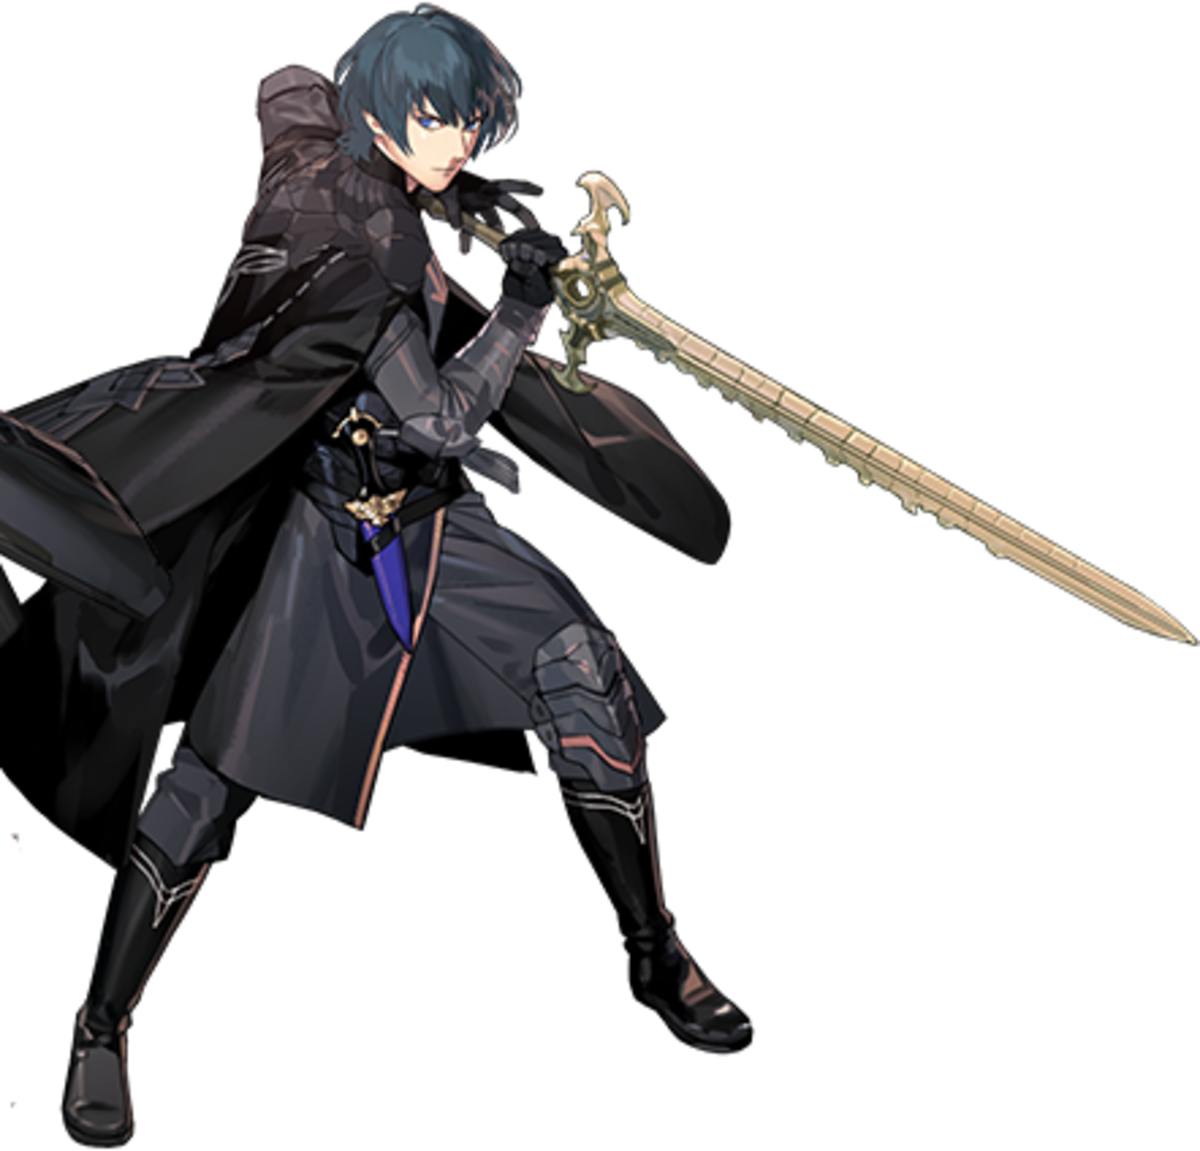 Byleth with the Sword of the Creator